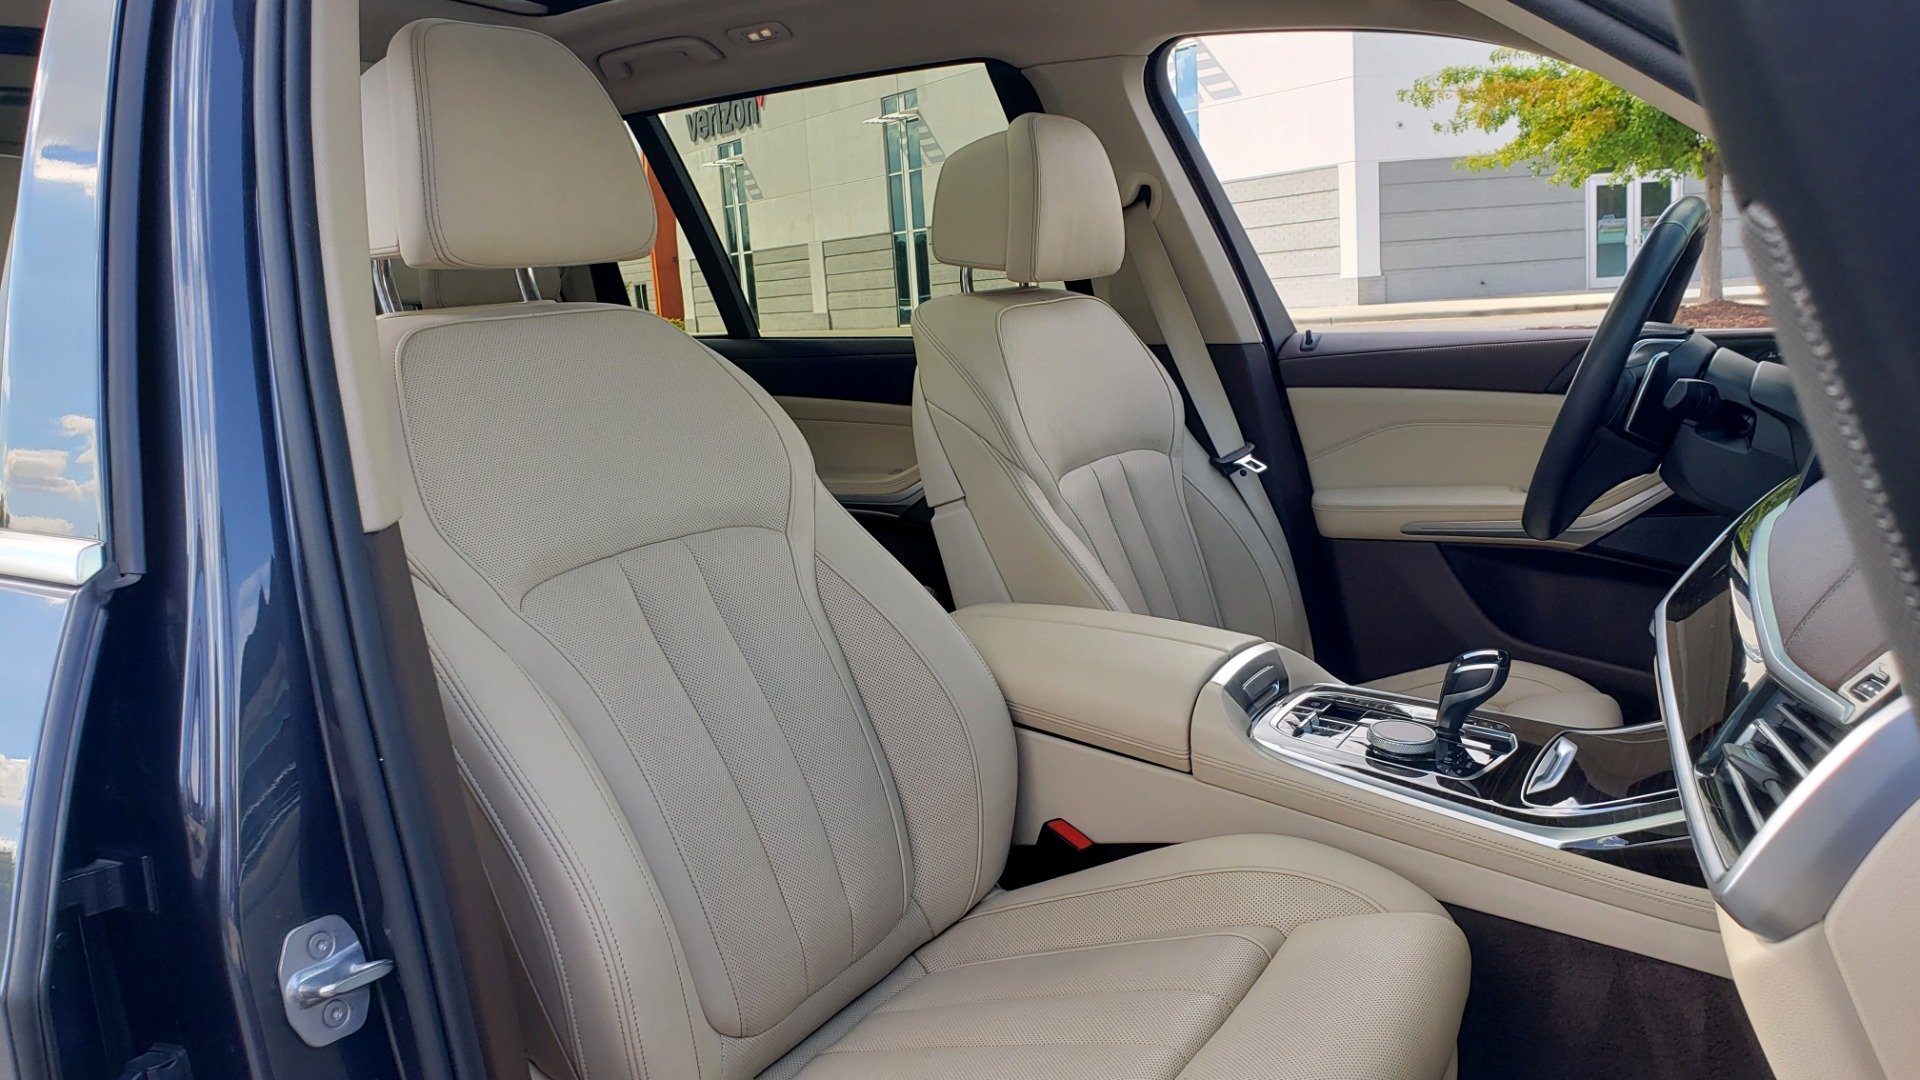 Used 2019 BMW X7 XDRIVE40I PREMIUM / LUXURY / COLD WEATHER / PARK ASST / PANORAMIC SKY / TOW for sale $75,999 at Formula Imports in Charlotte NC 28227 82